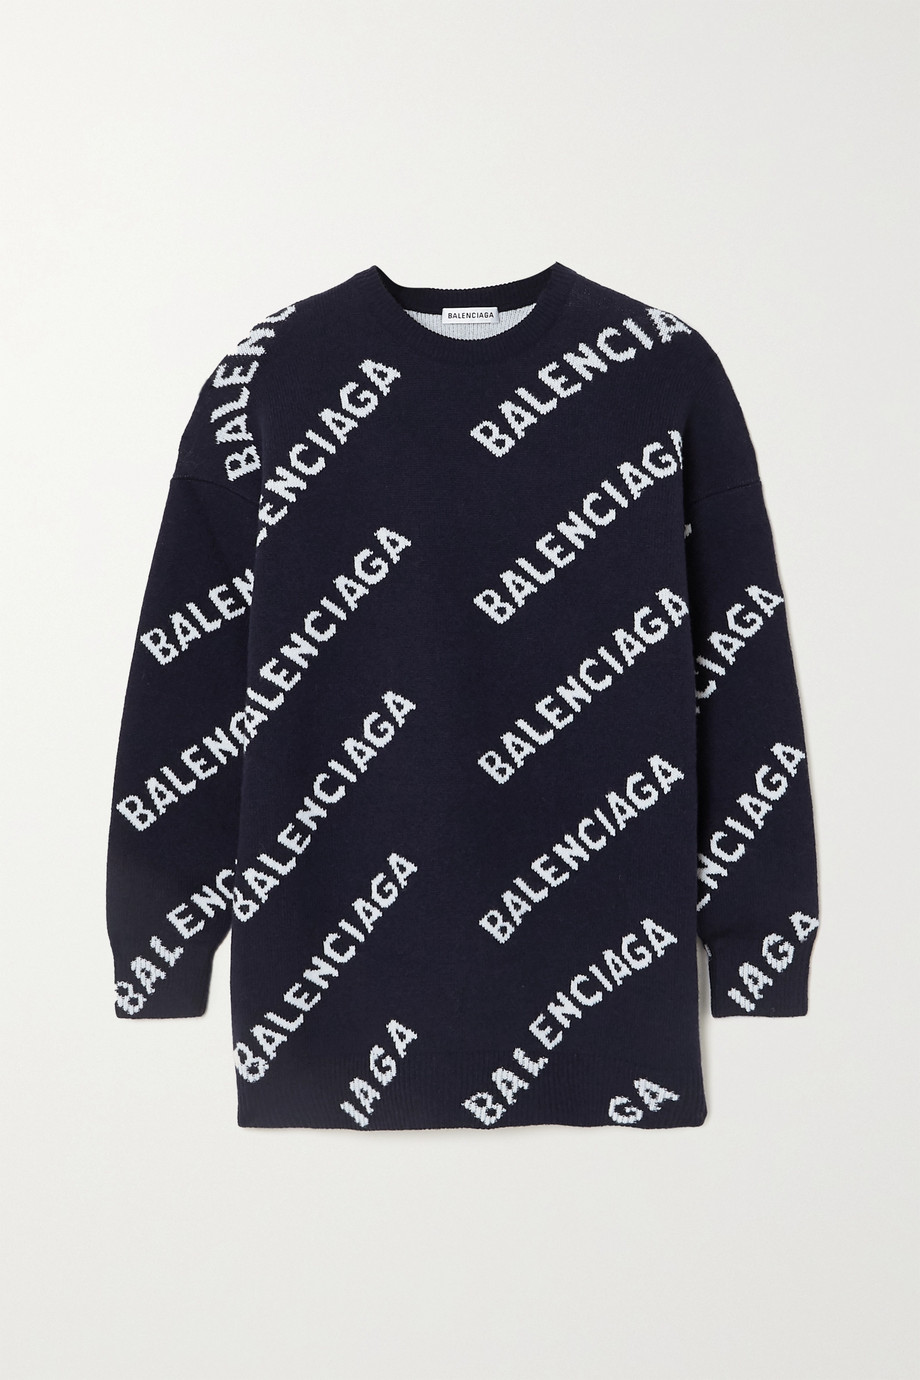 Balenciaga Intarsia wool-blend sweater